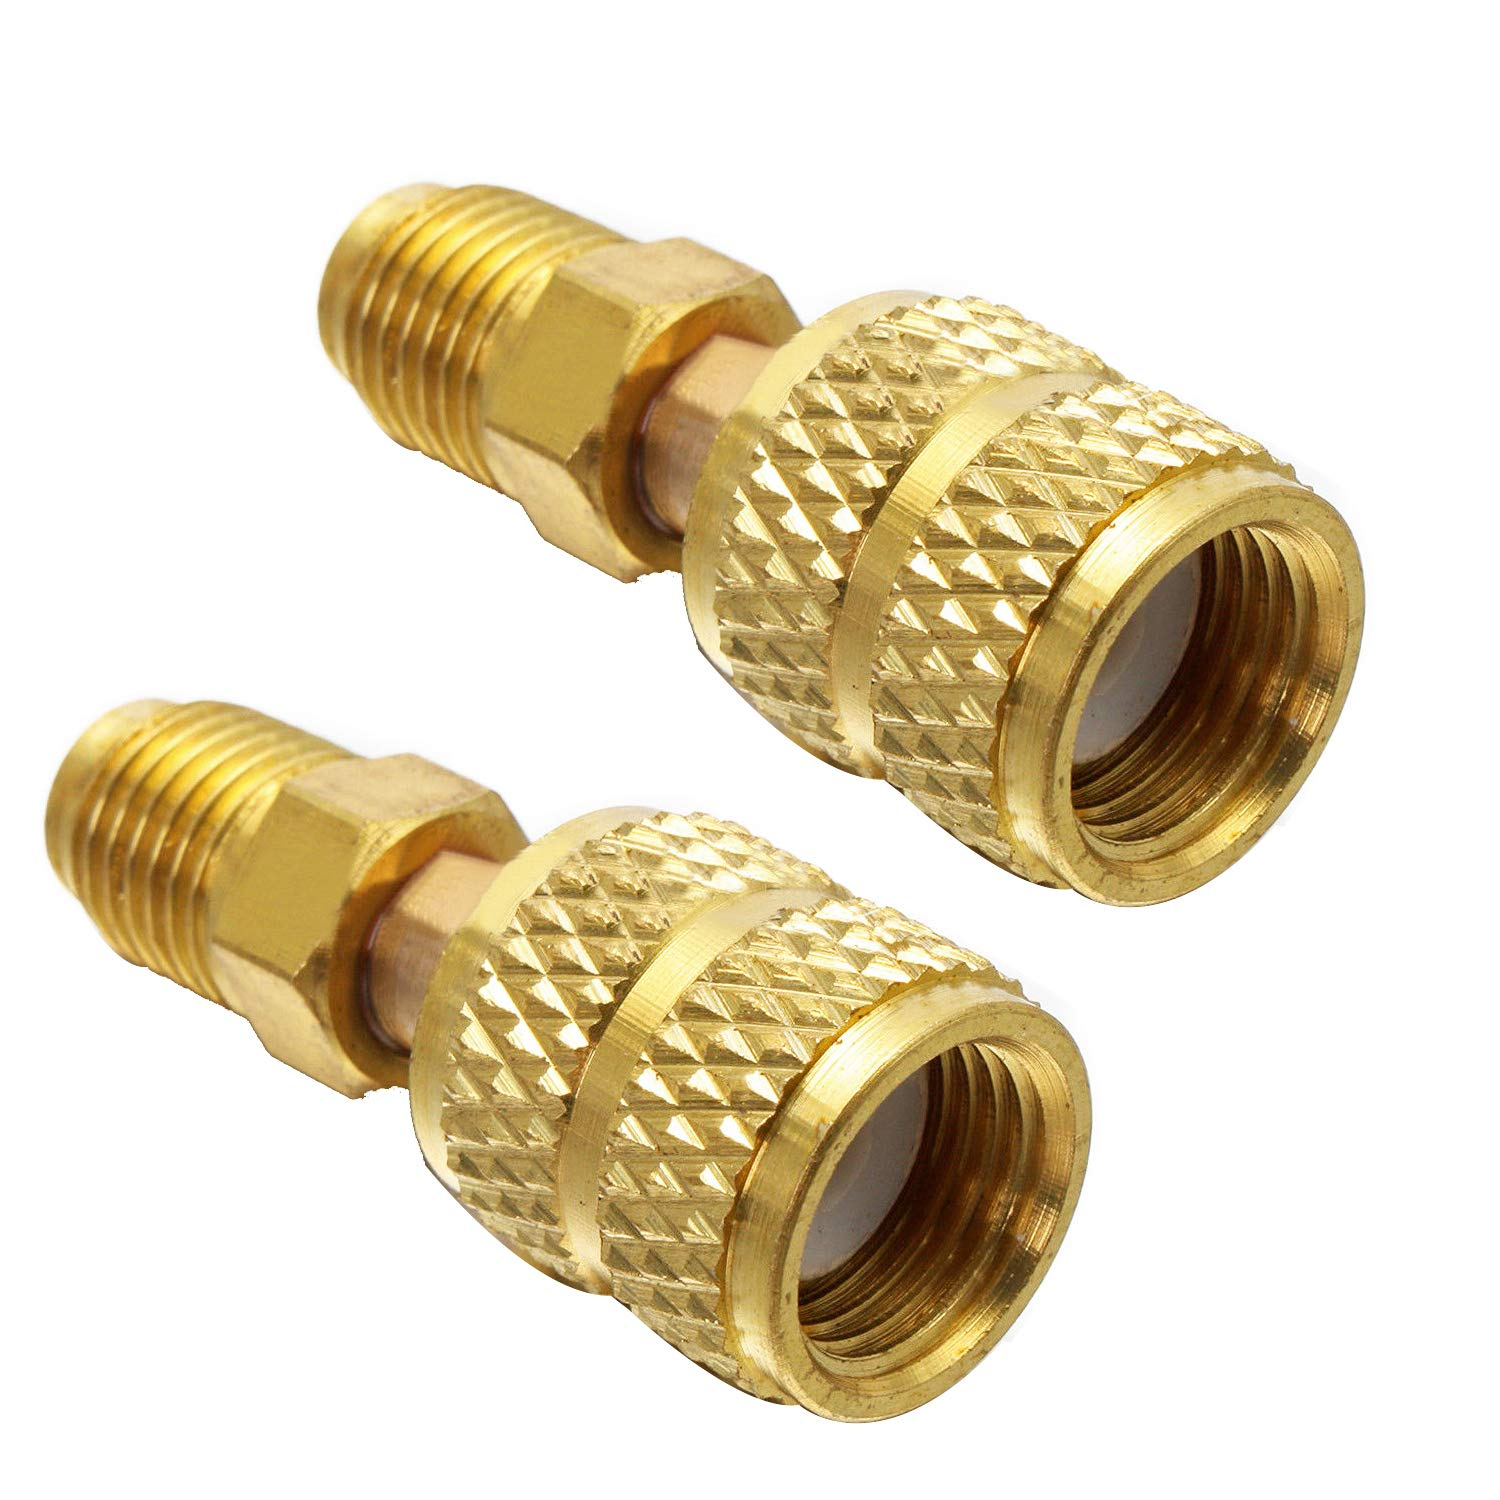 Air Conditioners 3PCS R410a Adapter Charging Vacuum Port Adapter Brass Converter with Thimble 5//16 Inch SAE Female Quick Couplers to 1//4 Inch SAE Male Flare for Mini Split System HVAC and Refriger